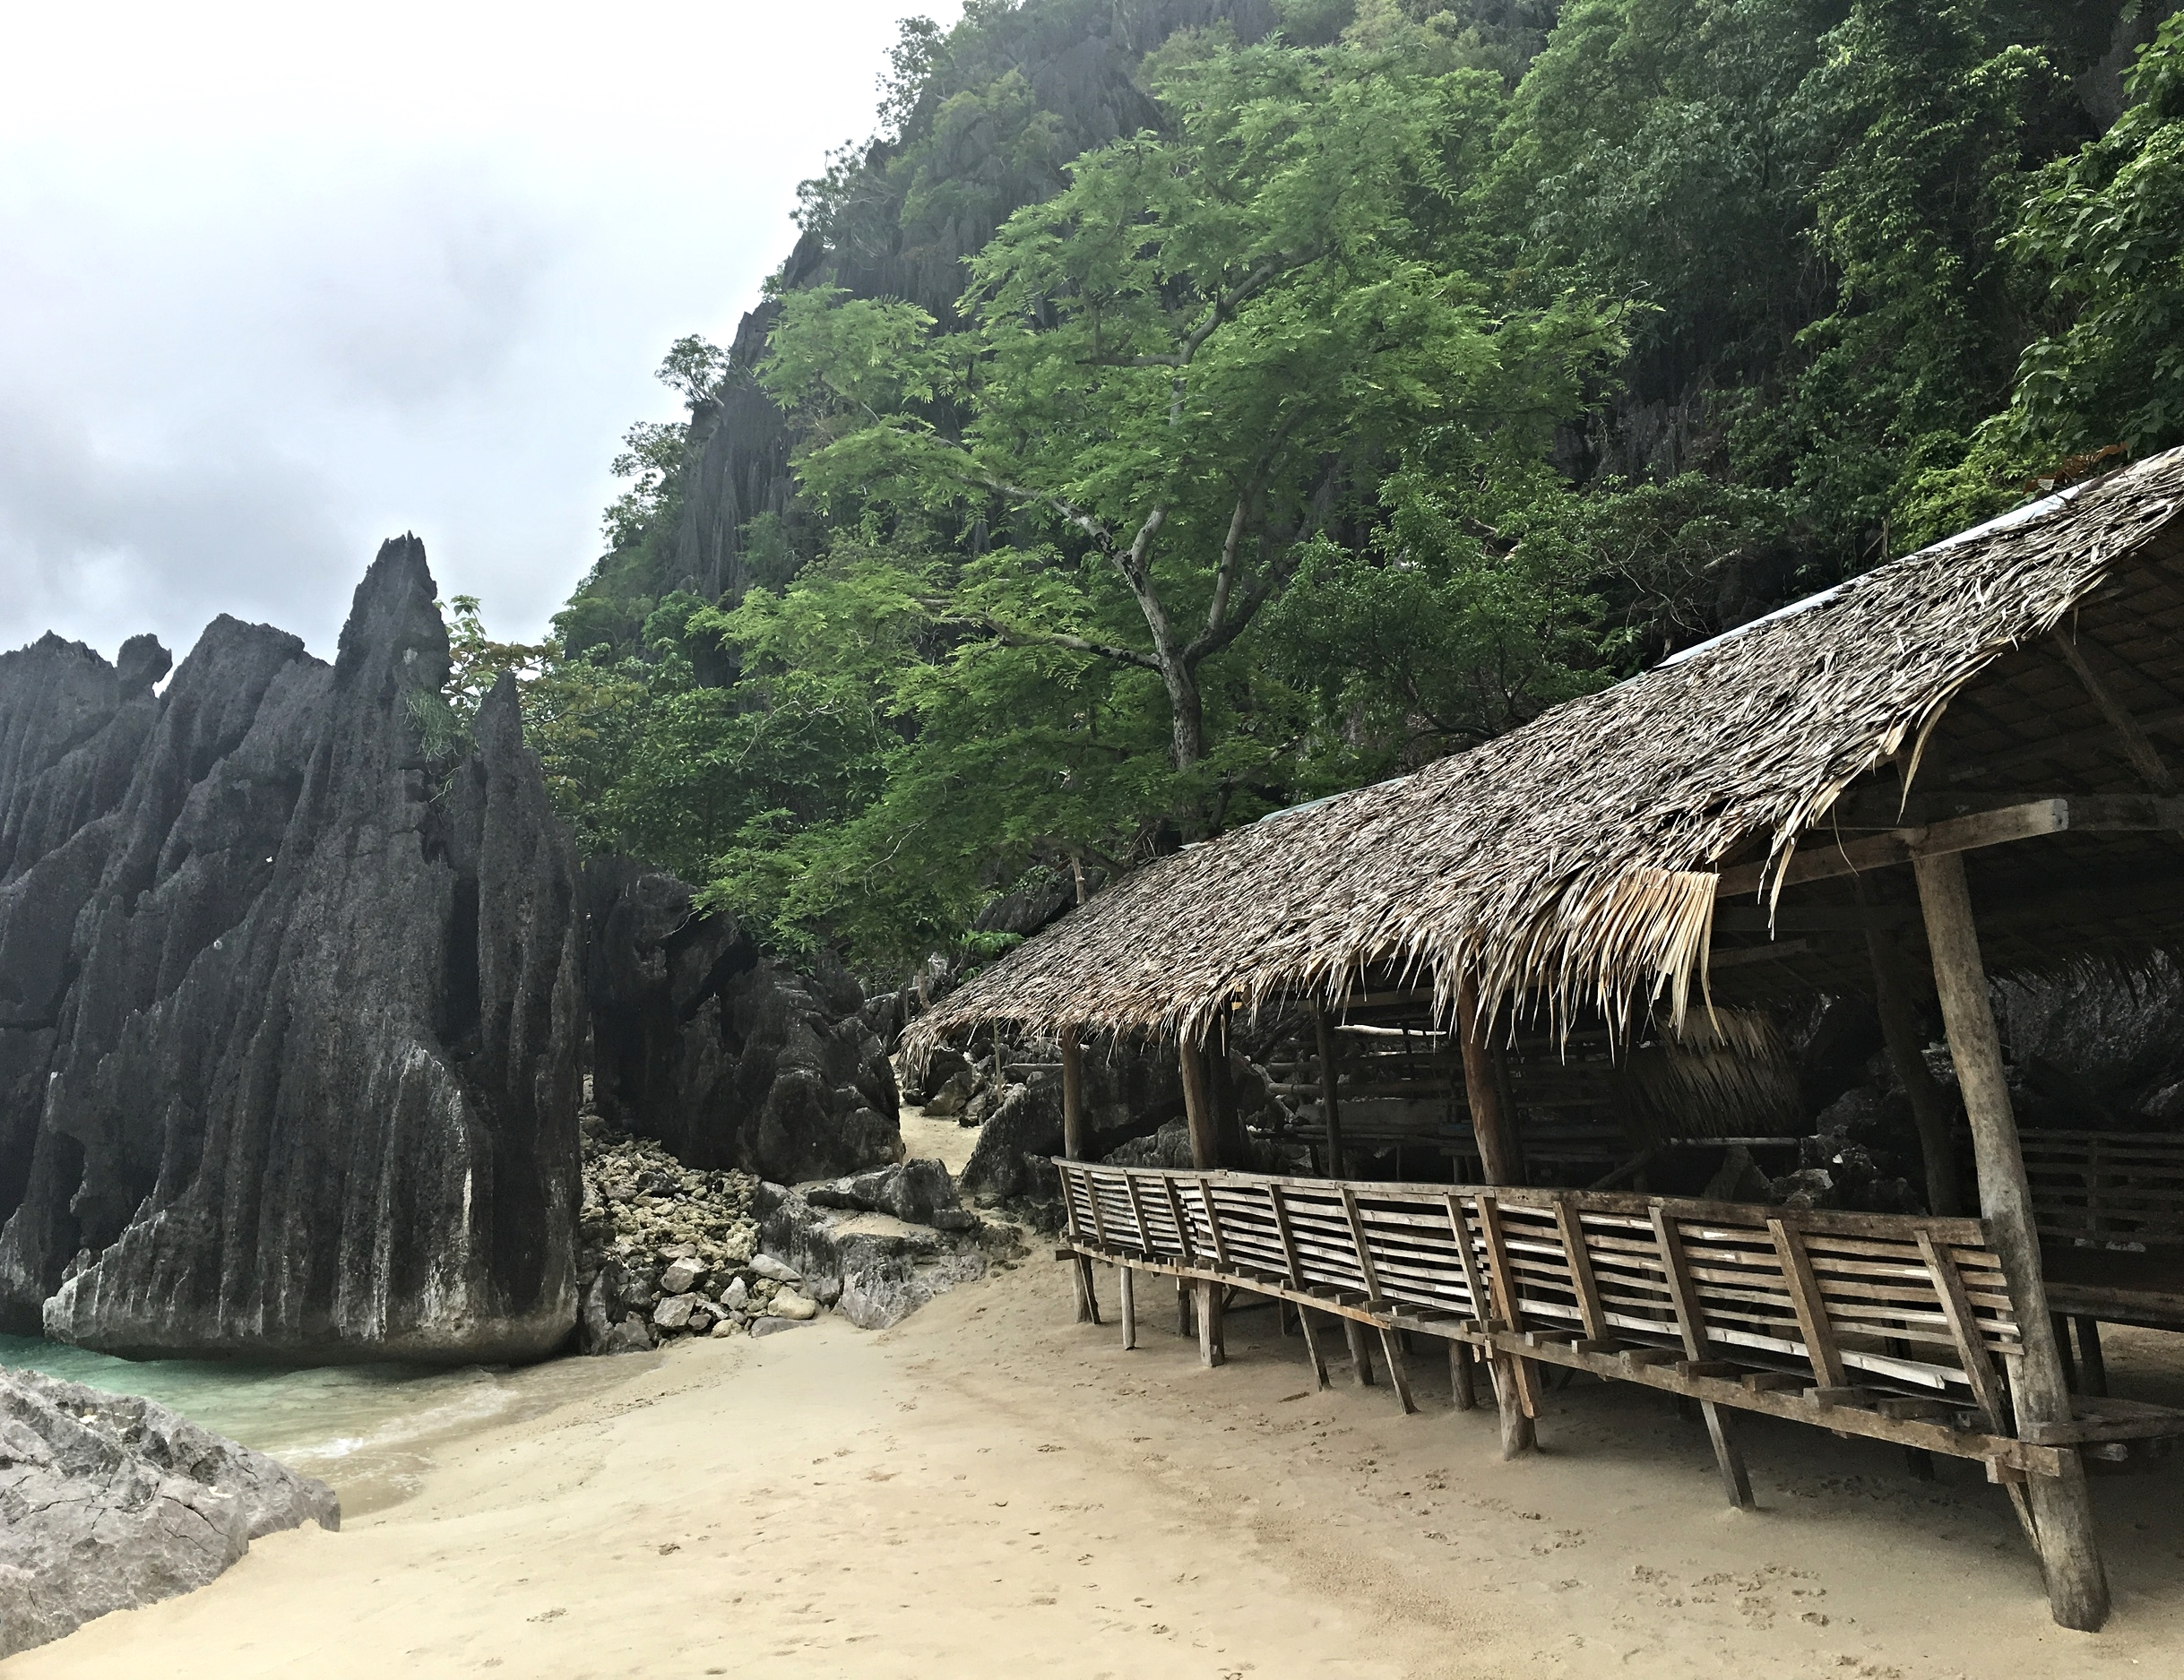 Black Island is one of the many islands that belong to the Calamian Islands group in Palawan, Philippines.